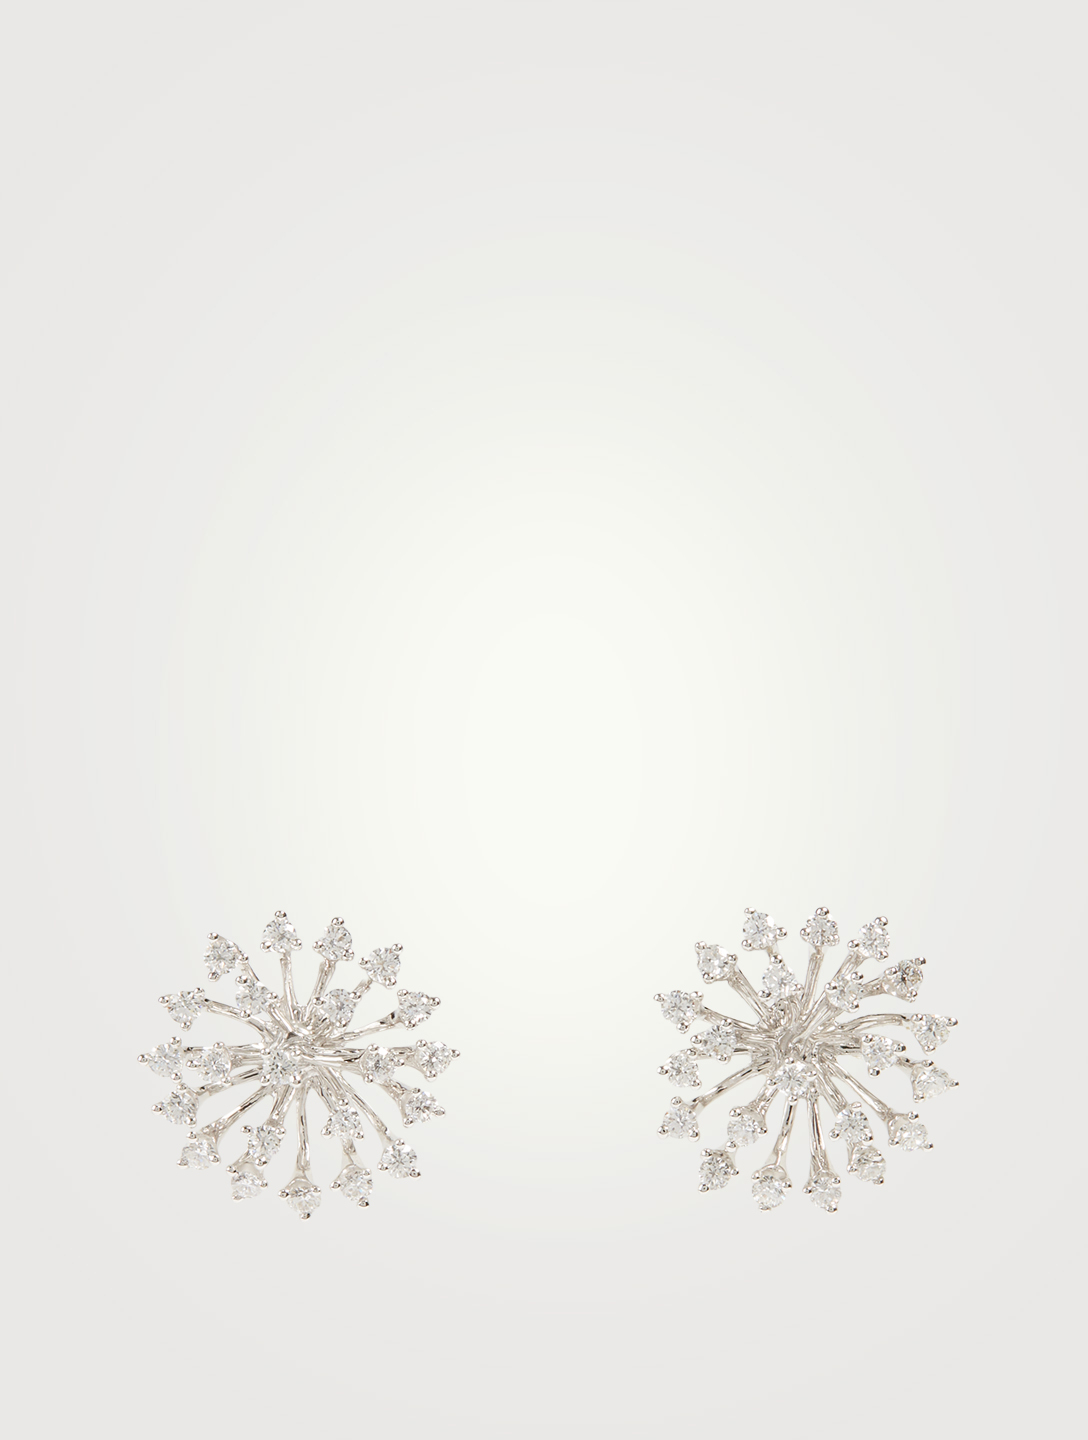 HUEB Luminus 18K White Gold Earrings With Diamonds Women's Metallic